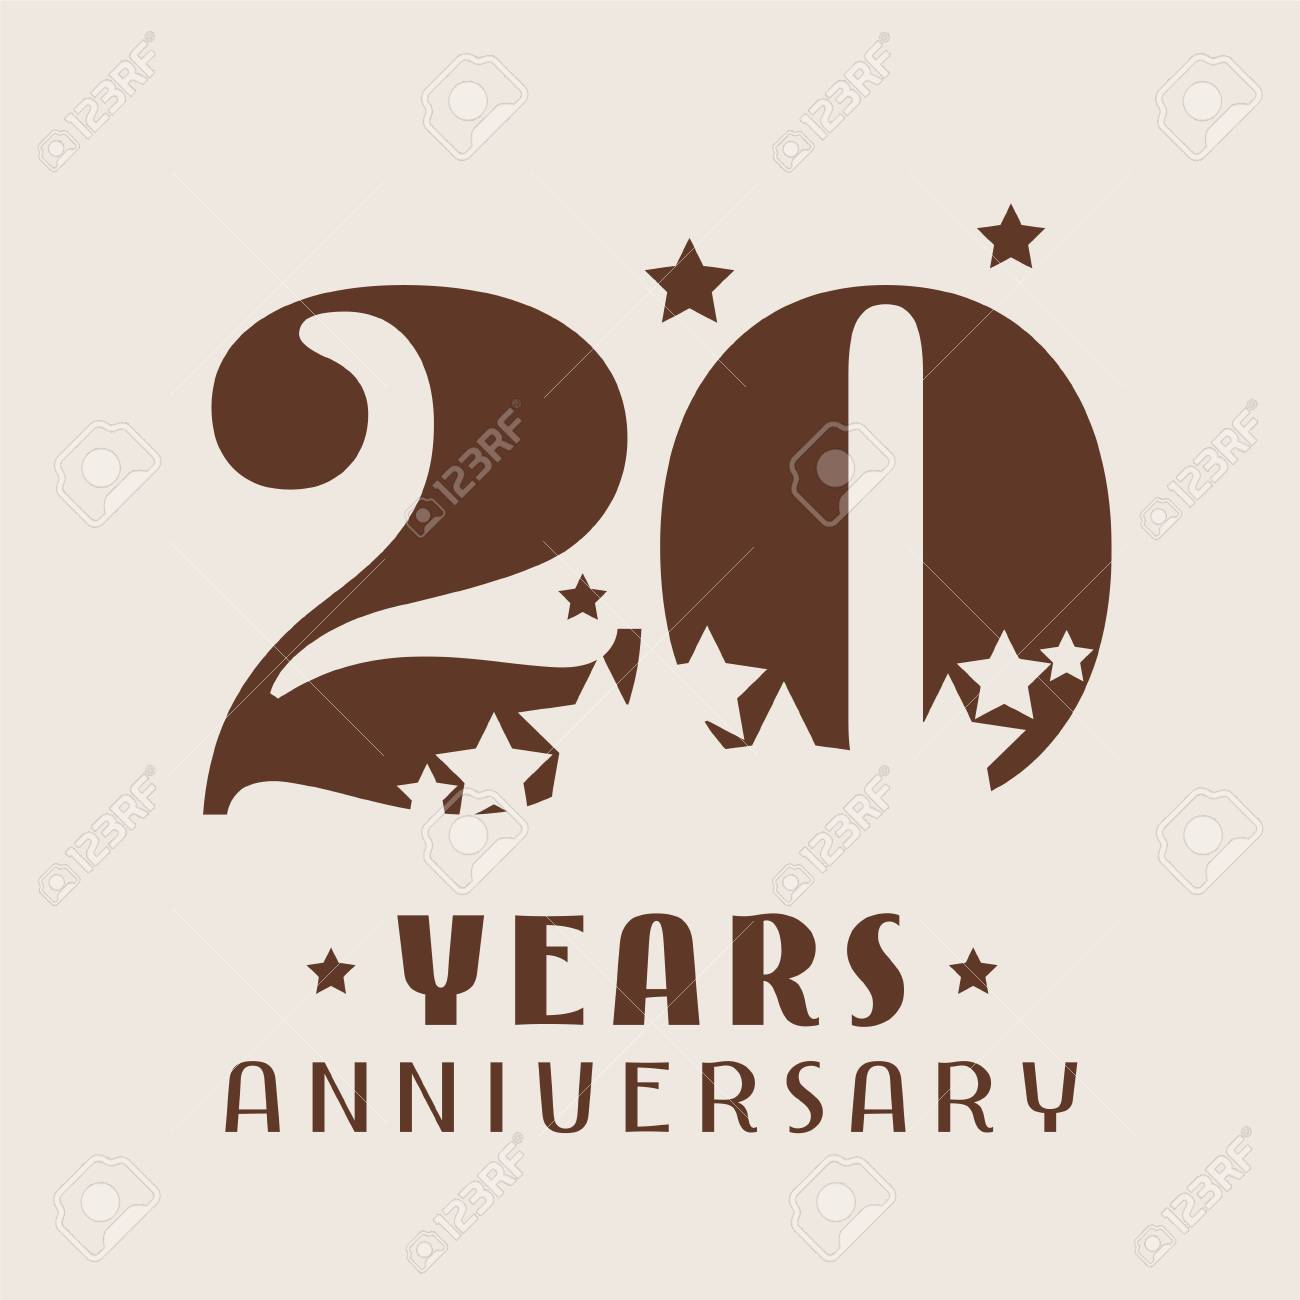 20 Years Anniversary Vector Icon Logo Graphic Design Element